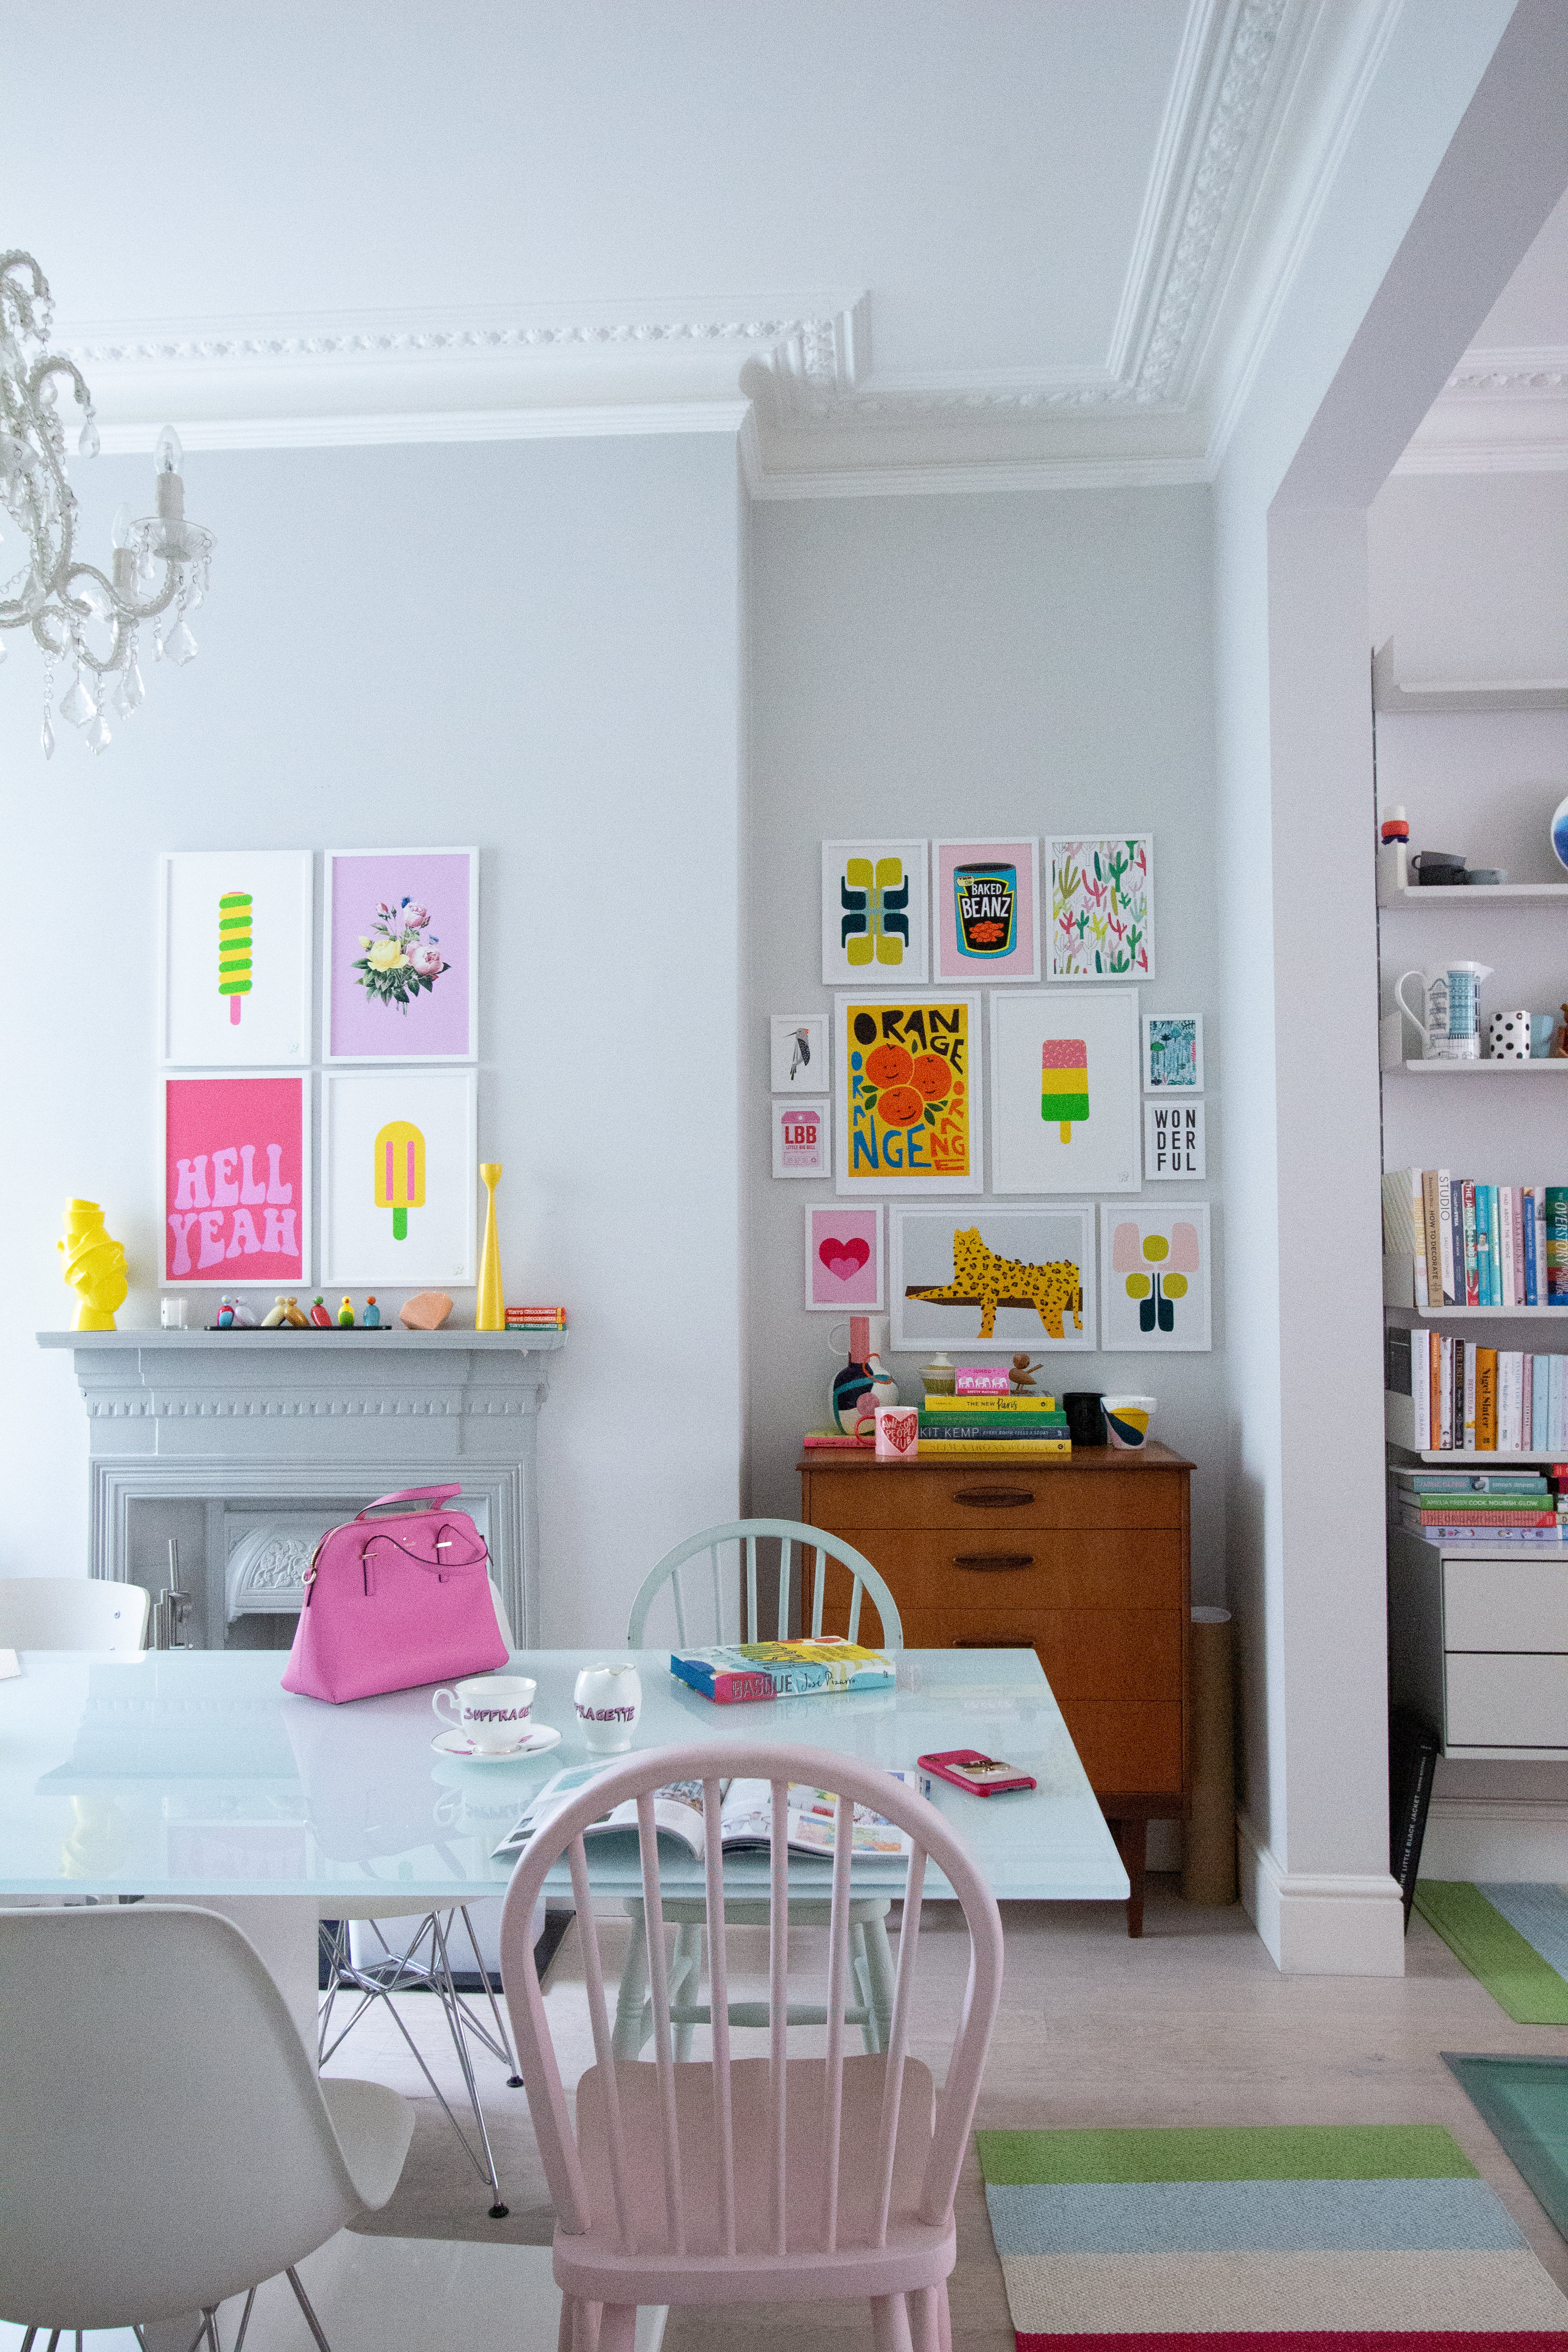 I Love How The Art Wall Has Made My Dining Room Look So Bright And Cheerful What Do You Think